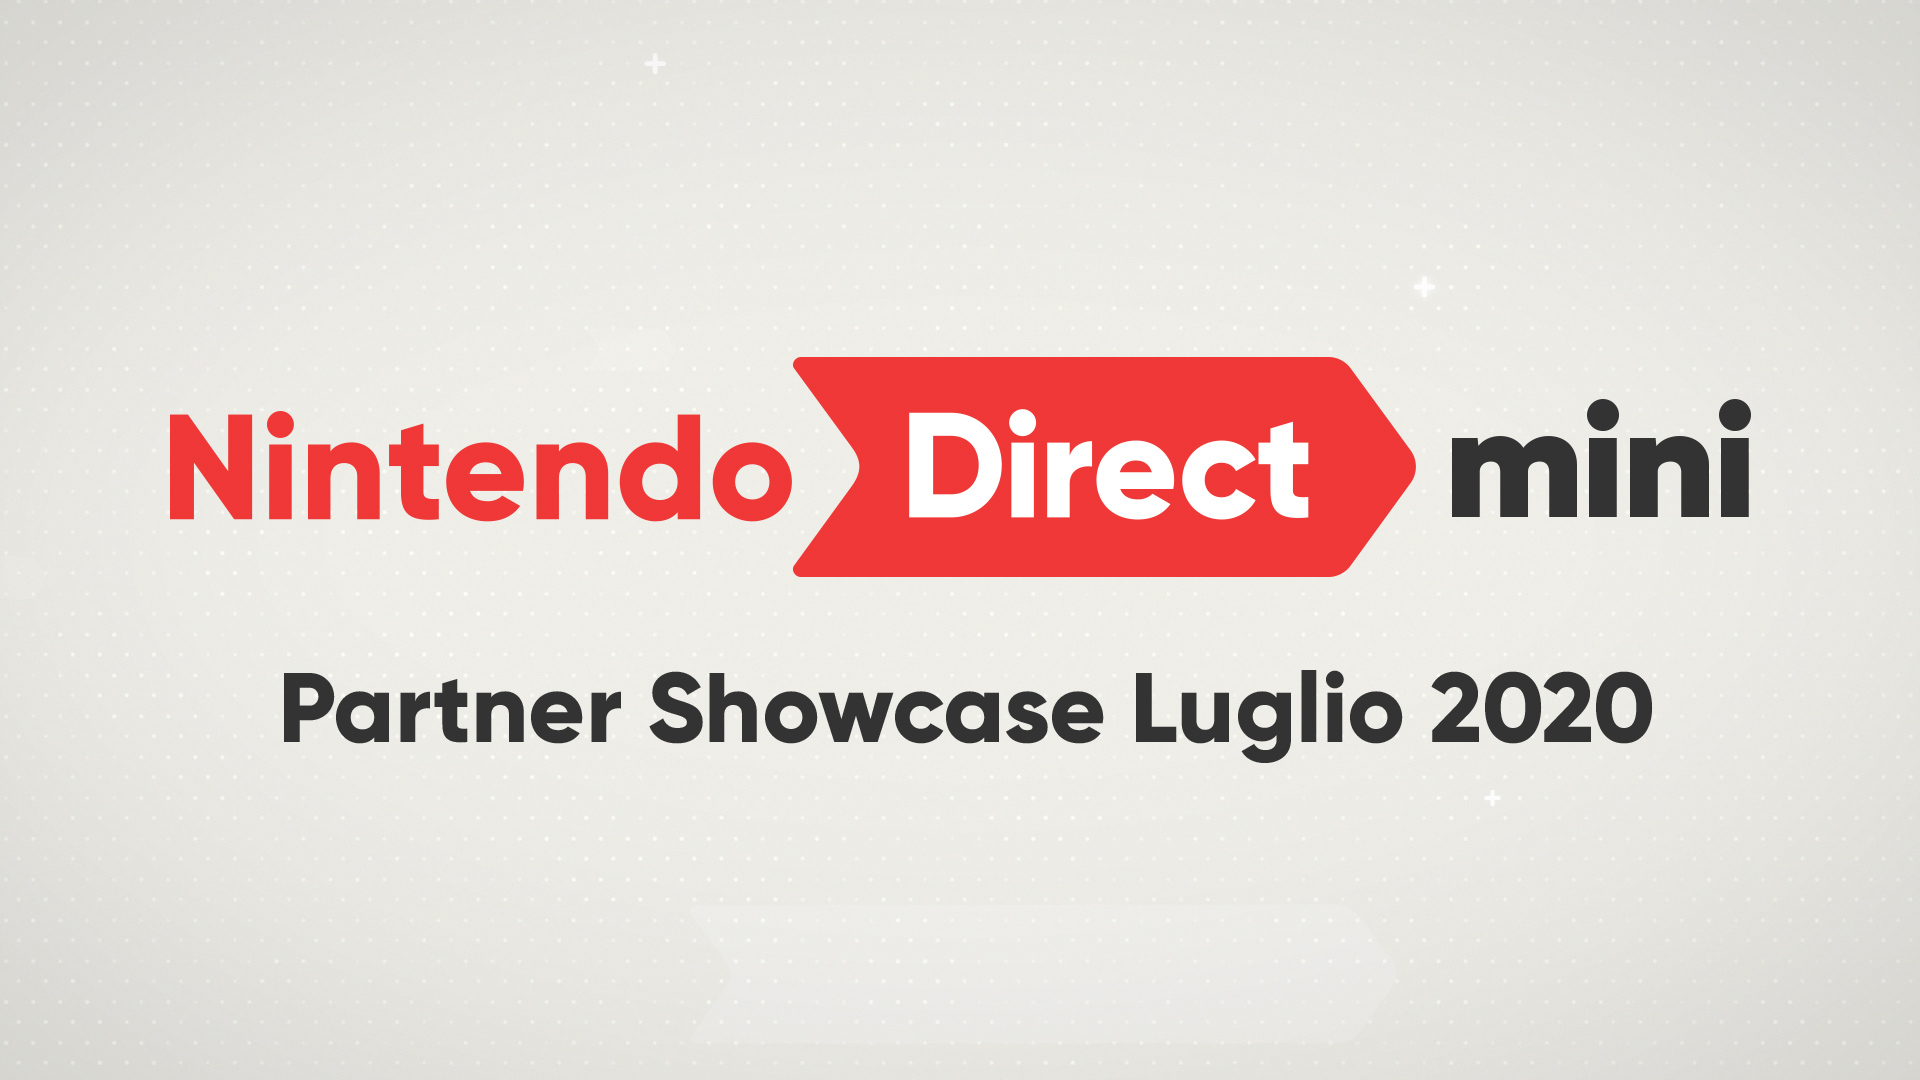 Annunciato un Nintendo Direct Mini: Partner Showcase